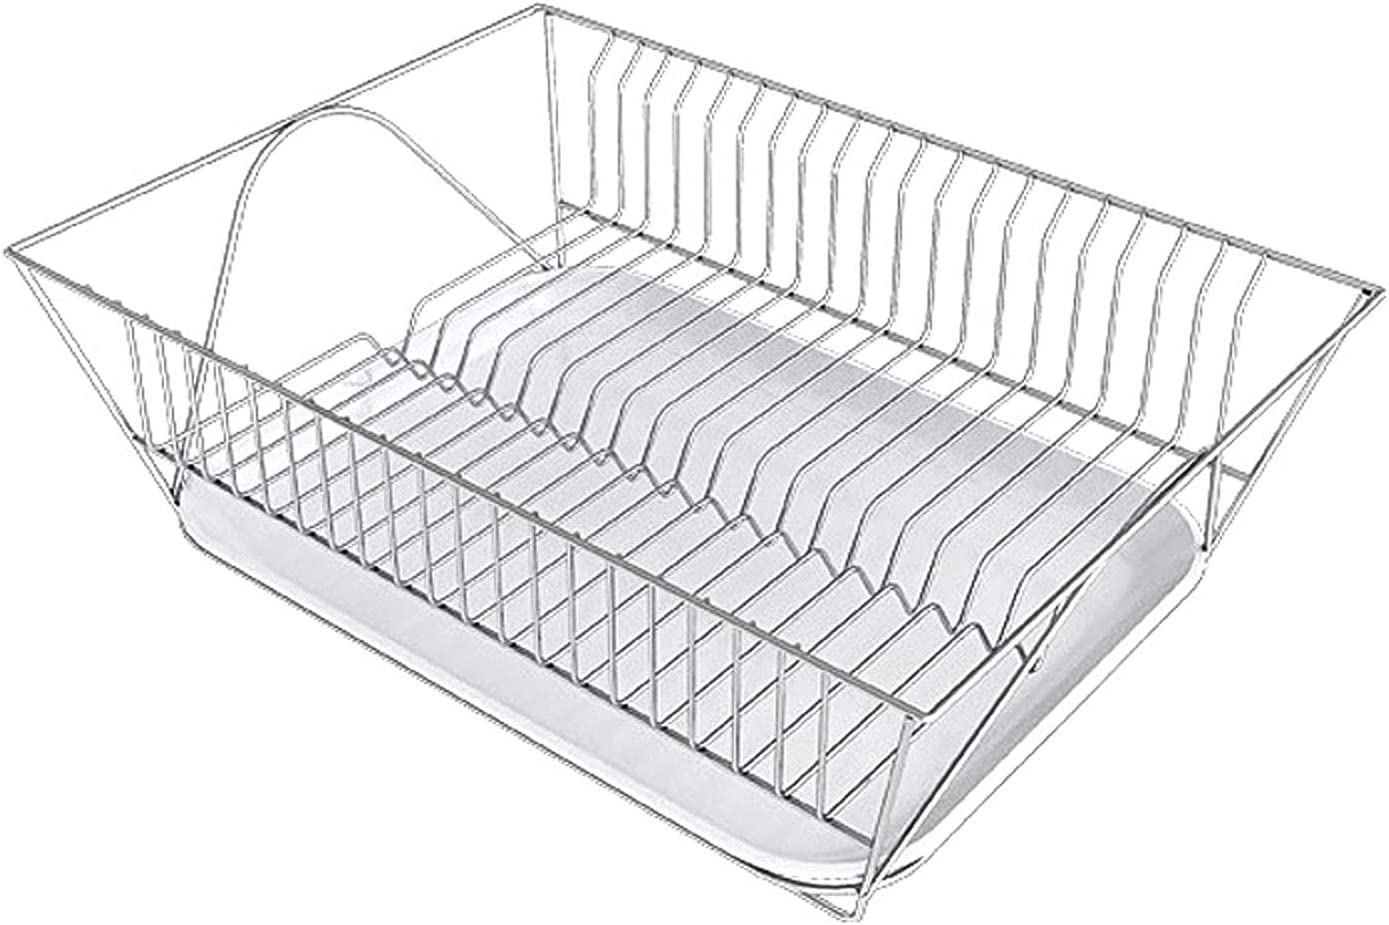 QYYYUNDING 304 Stainless Steel Dish With Drip Tra Sales results No. 1 Rack 1 year warranty Removable